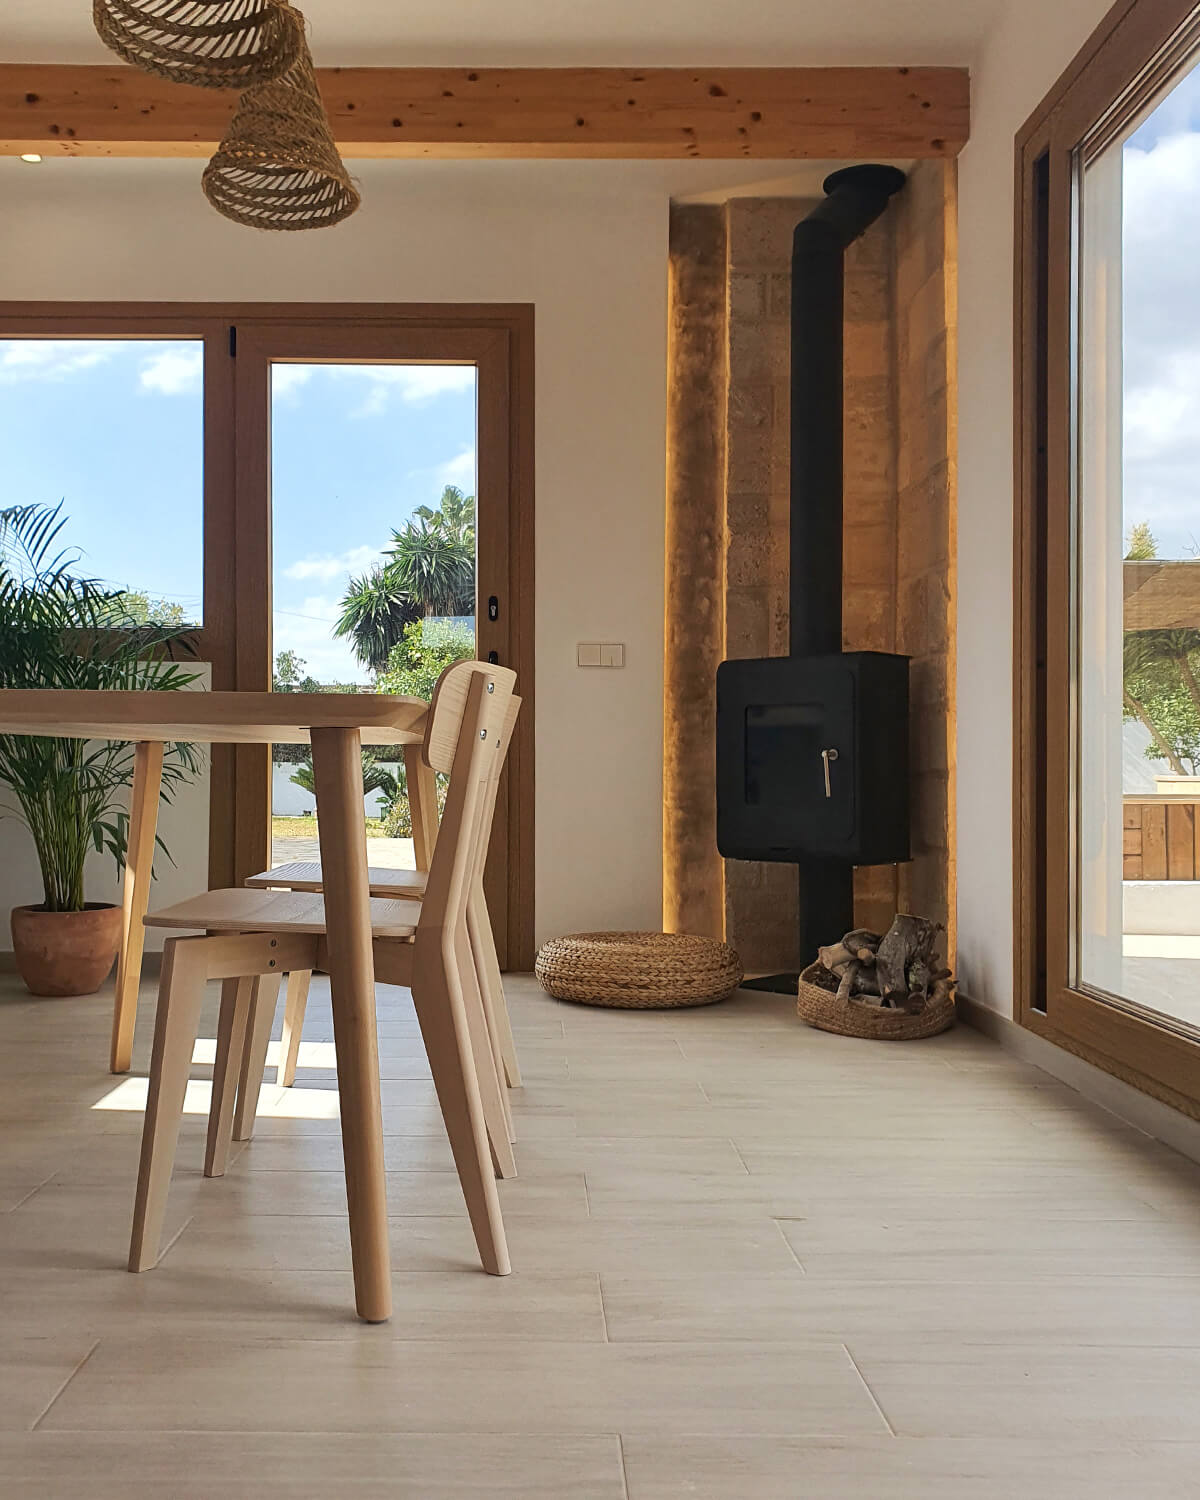 Eco Finca Sa Becadeta - Llucmajor, Illes Balears, Spain   vacation homes for rent   vacation homes for rent